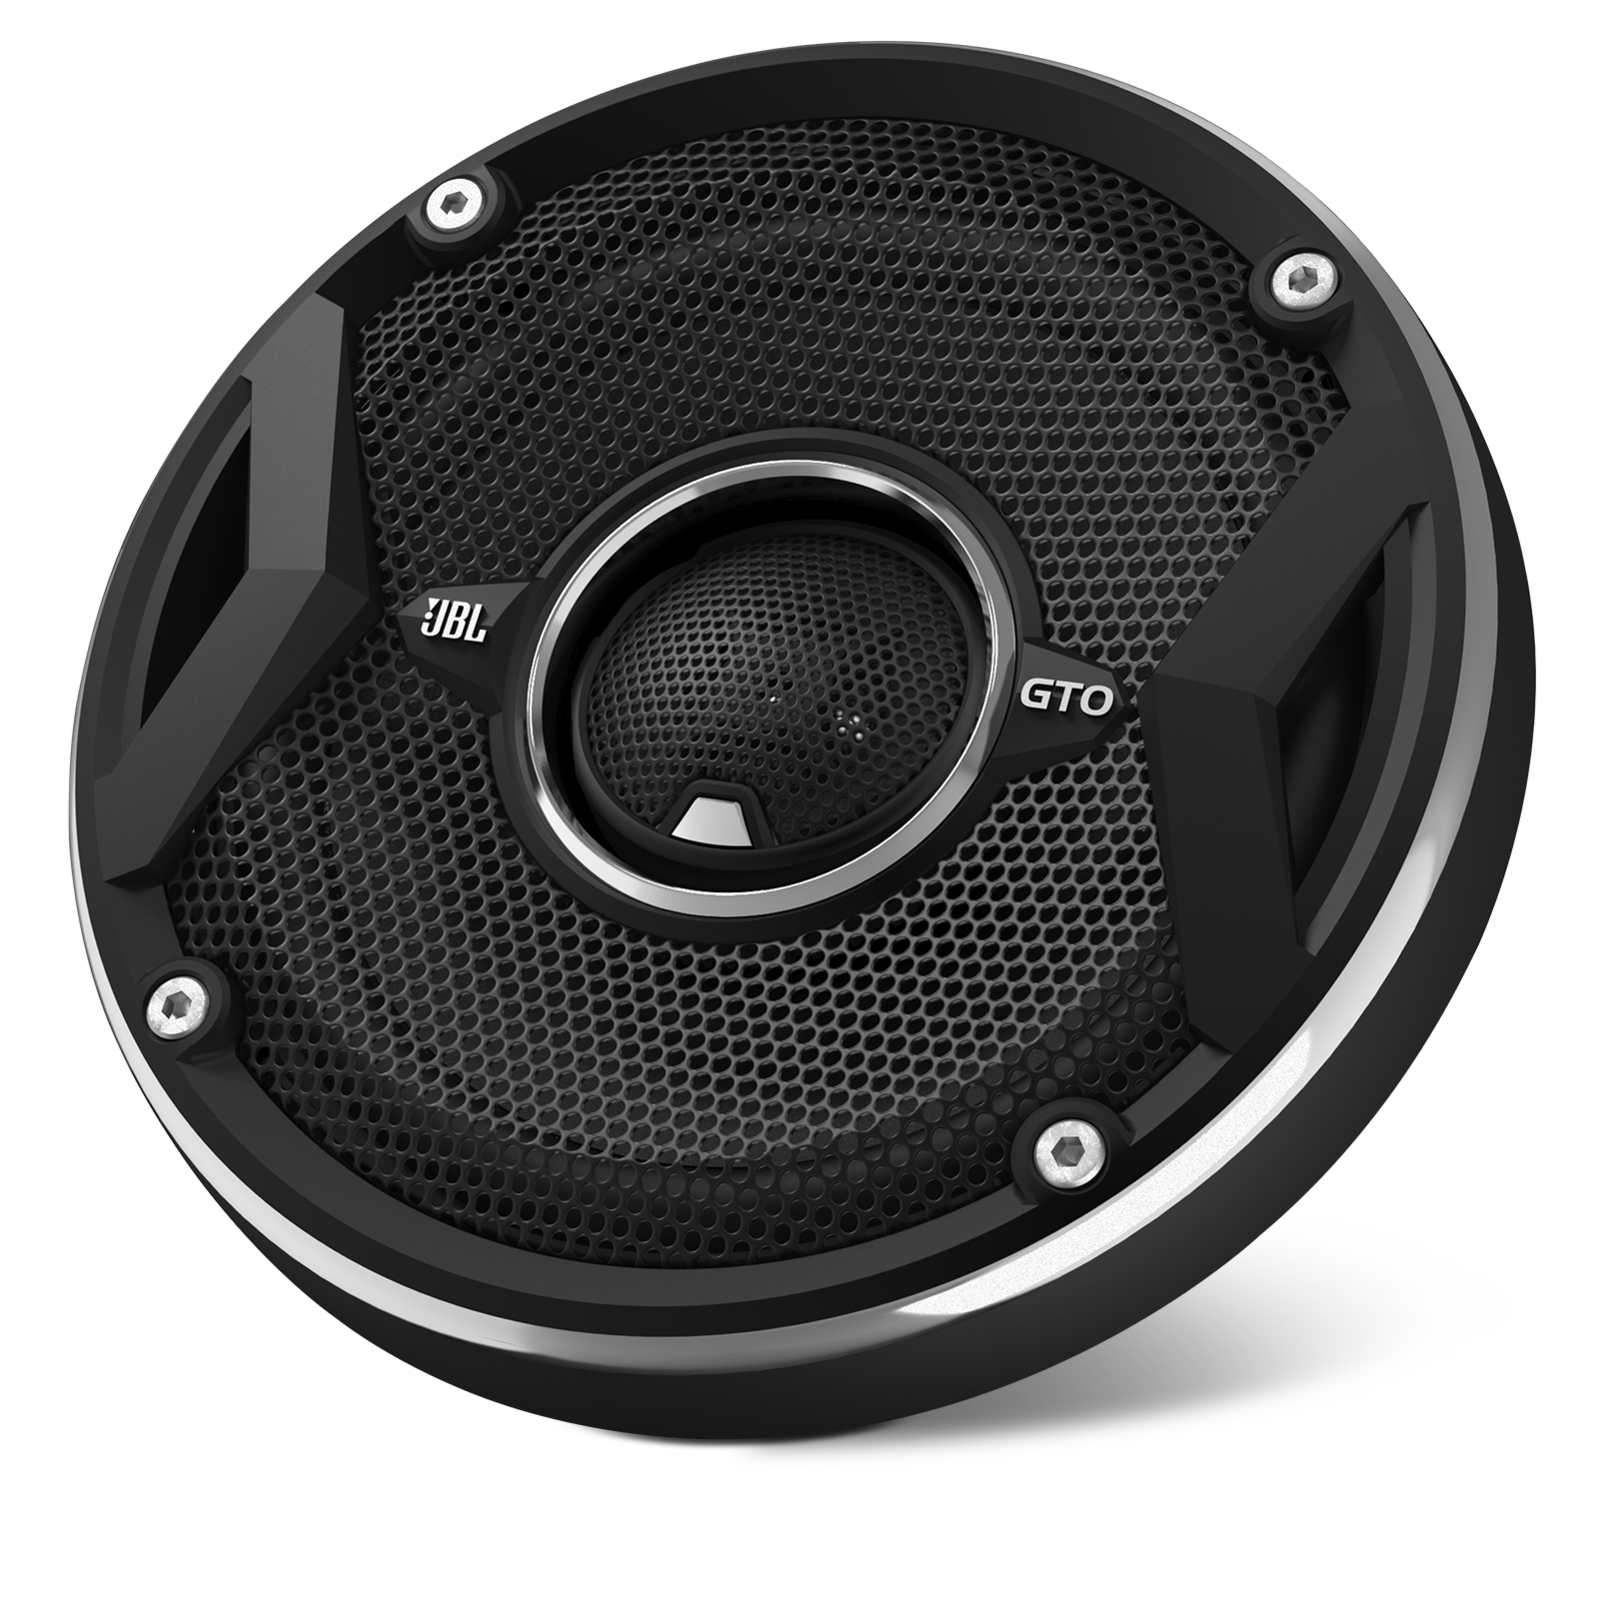 Gto529 180 Watt Two Way 6 1 2 Speaker System Loudspeaker Protection With Soft Start